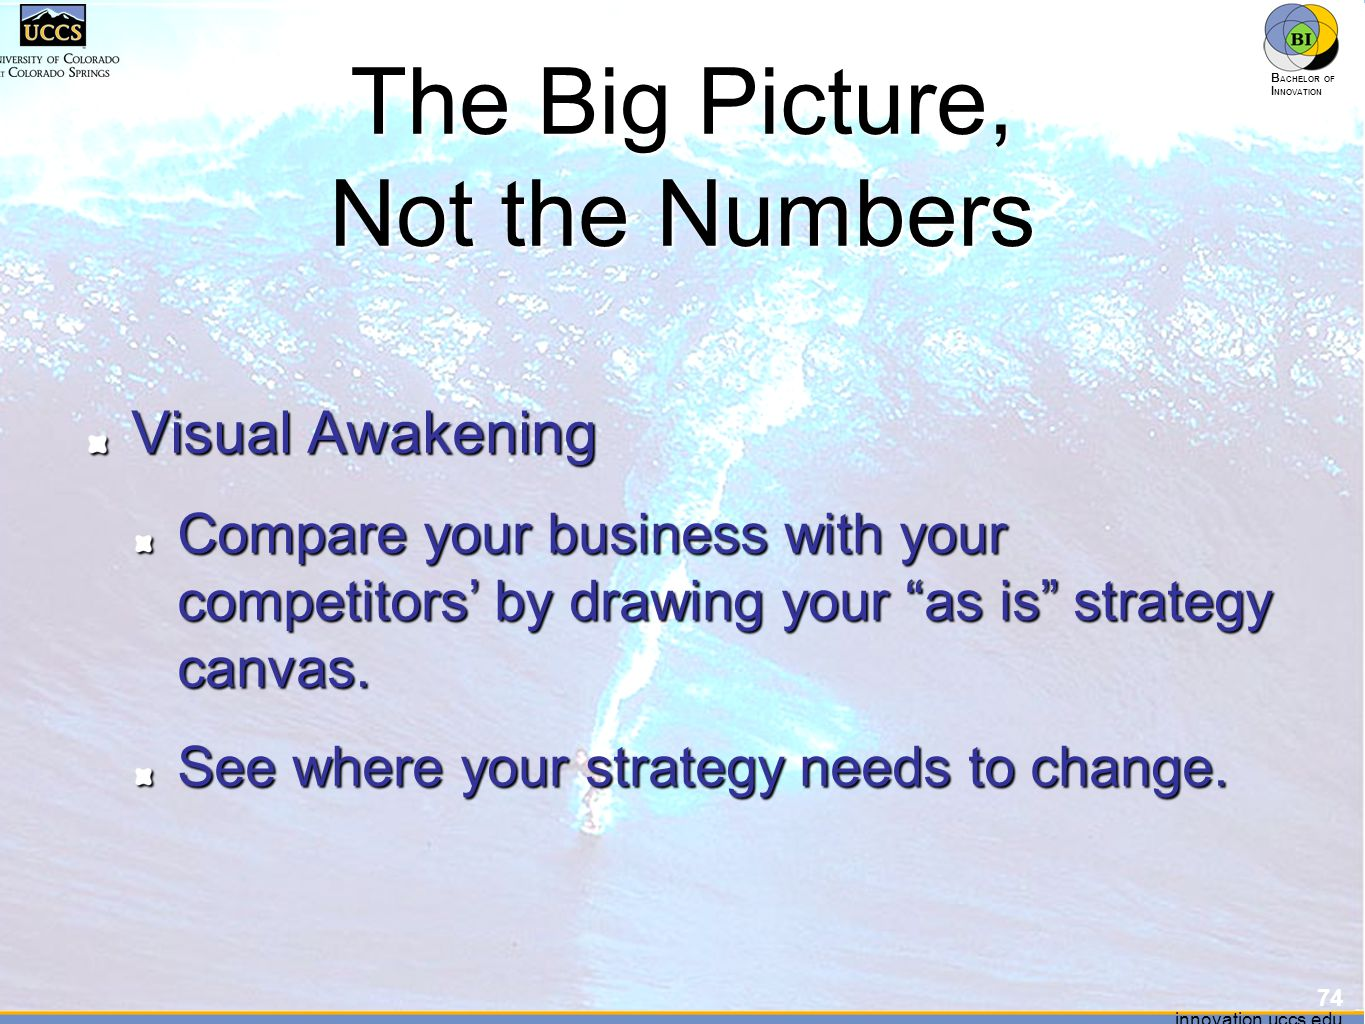 innovation.uccs.edu B ACHELOR OF I NNOVATION ™ innovation.uccs.edu B ACHELOR OF I NNOVATION ™ The Big Picture, Not the Numbers Visual Awakening Compare your business with your competitors' by drawing your as is strategy canvas.